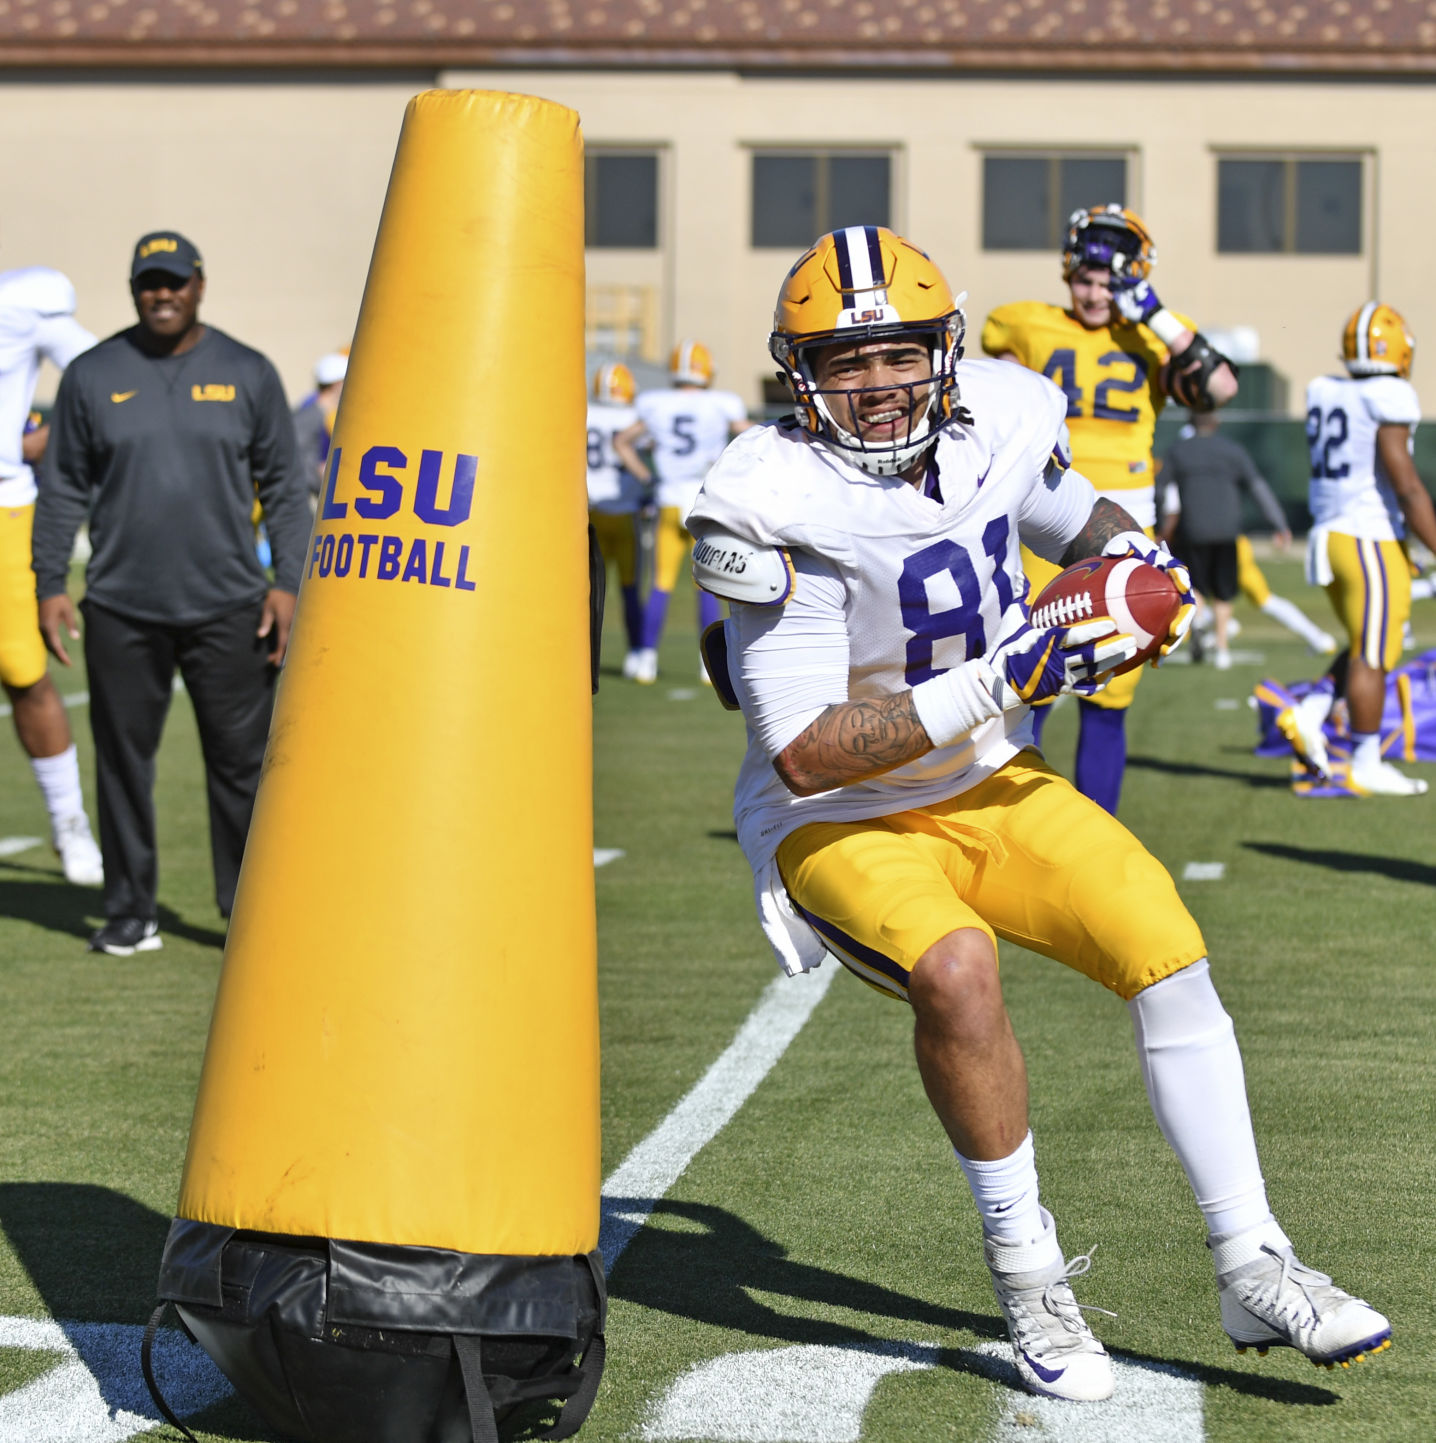 Rabalais After Years Away From The Game Lsu Tight End